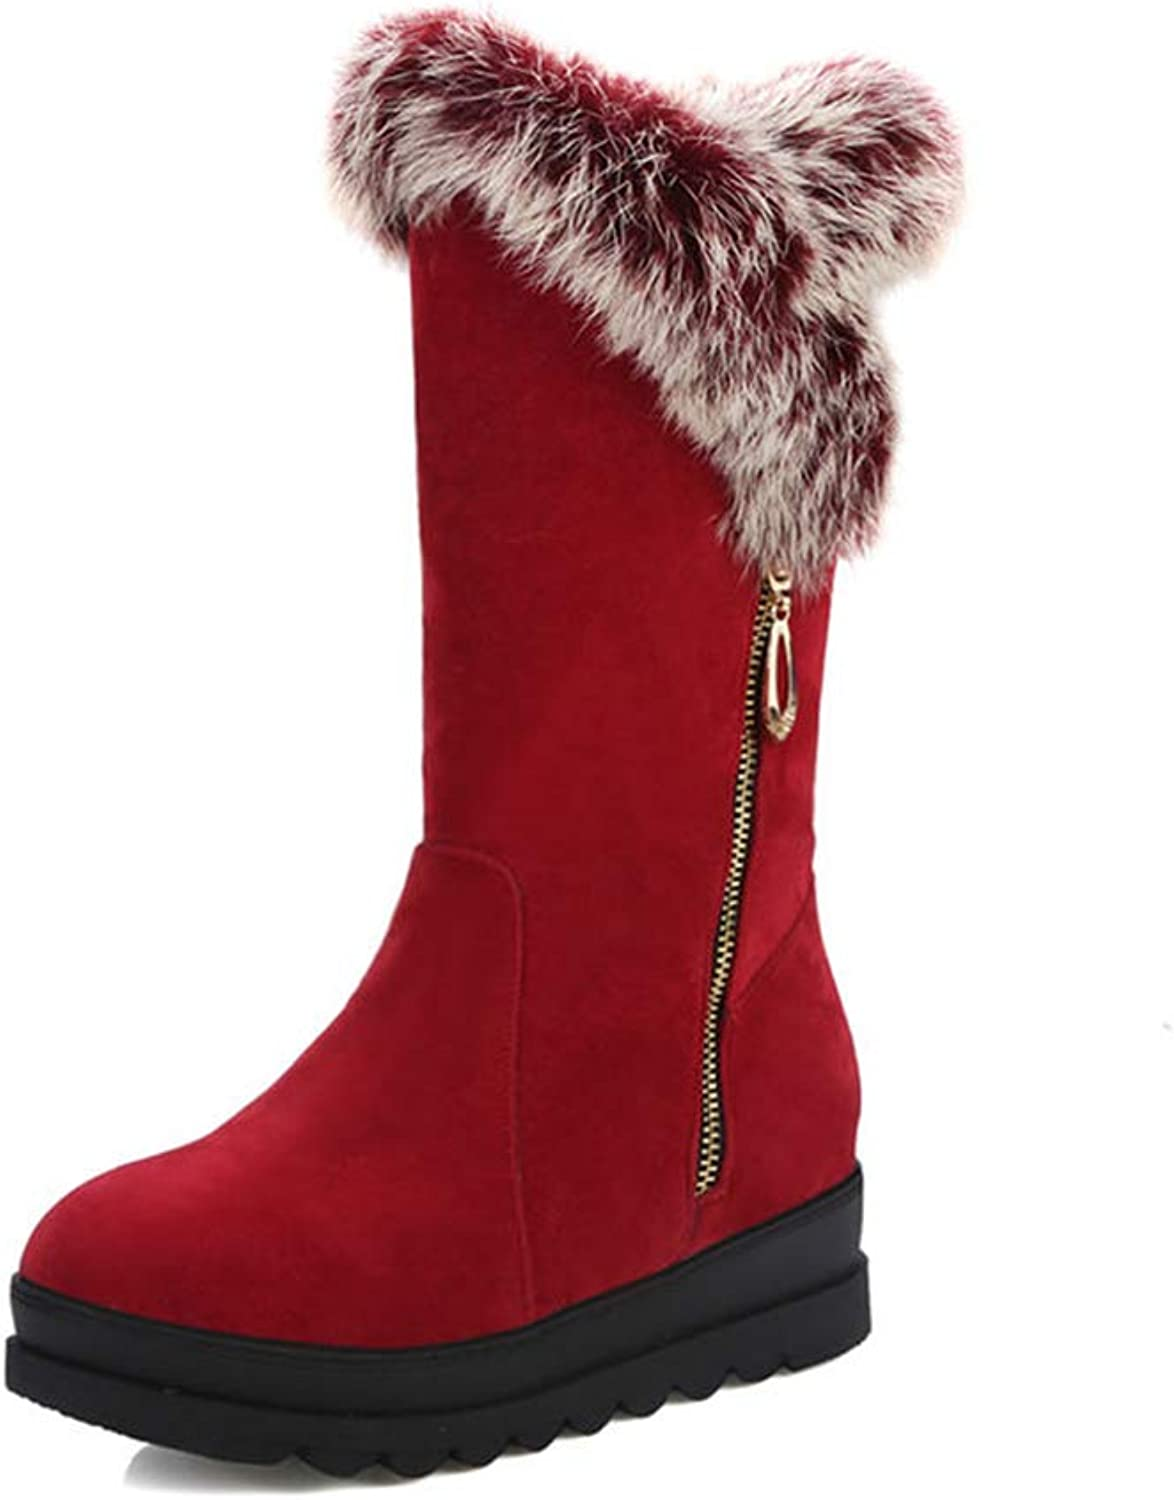 Hoxekle Woman Mid Calf Boots Fur Winter Thick Platform Zipper Decoration Warm Short Plush Girl Snow Boots shoes